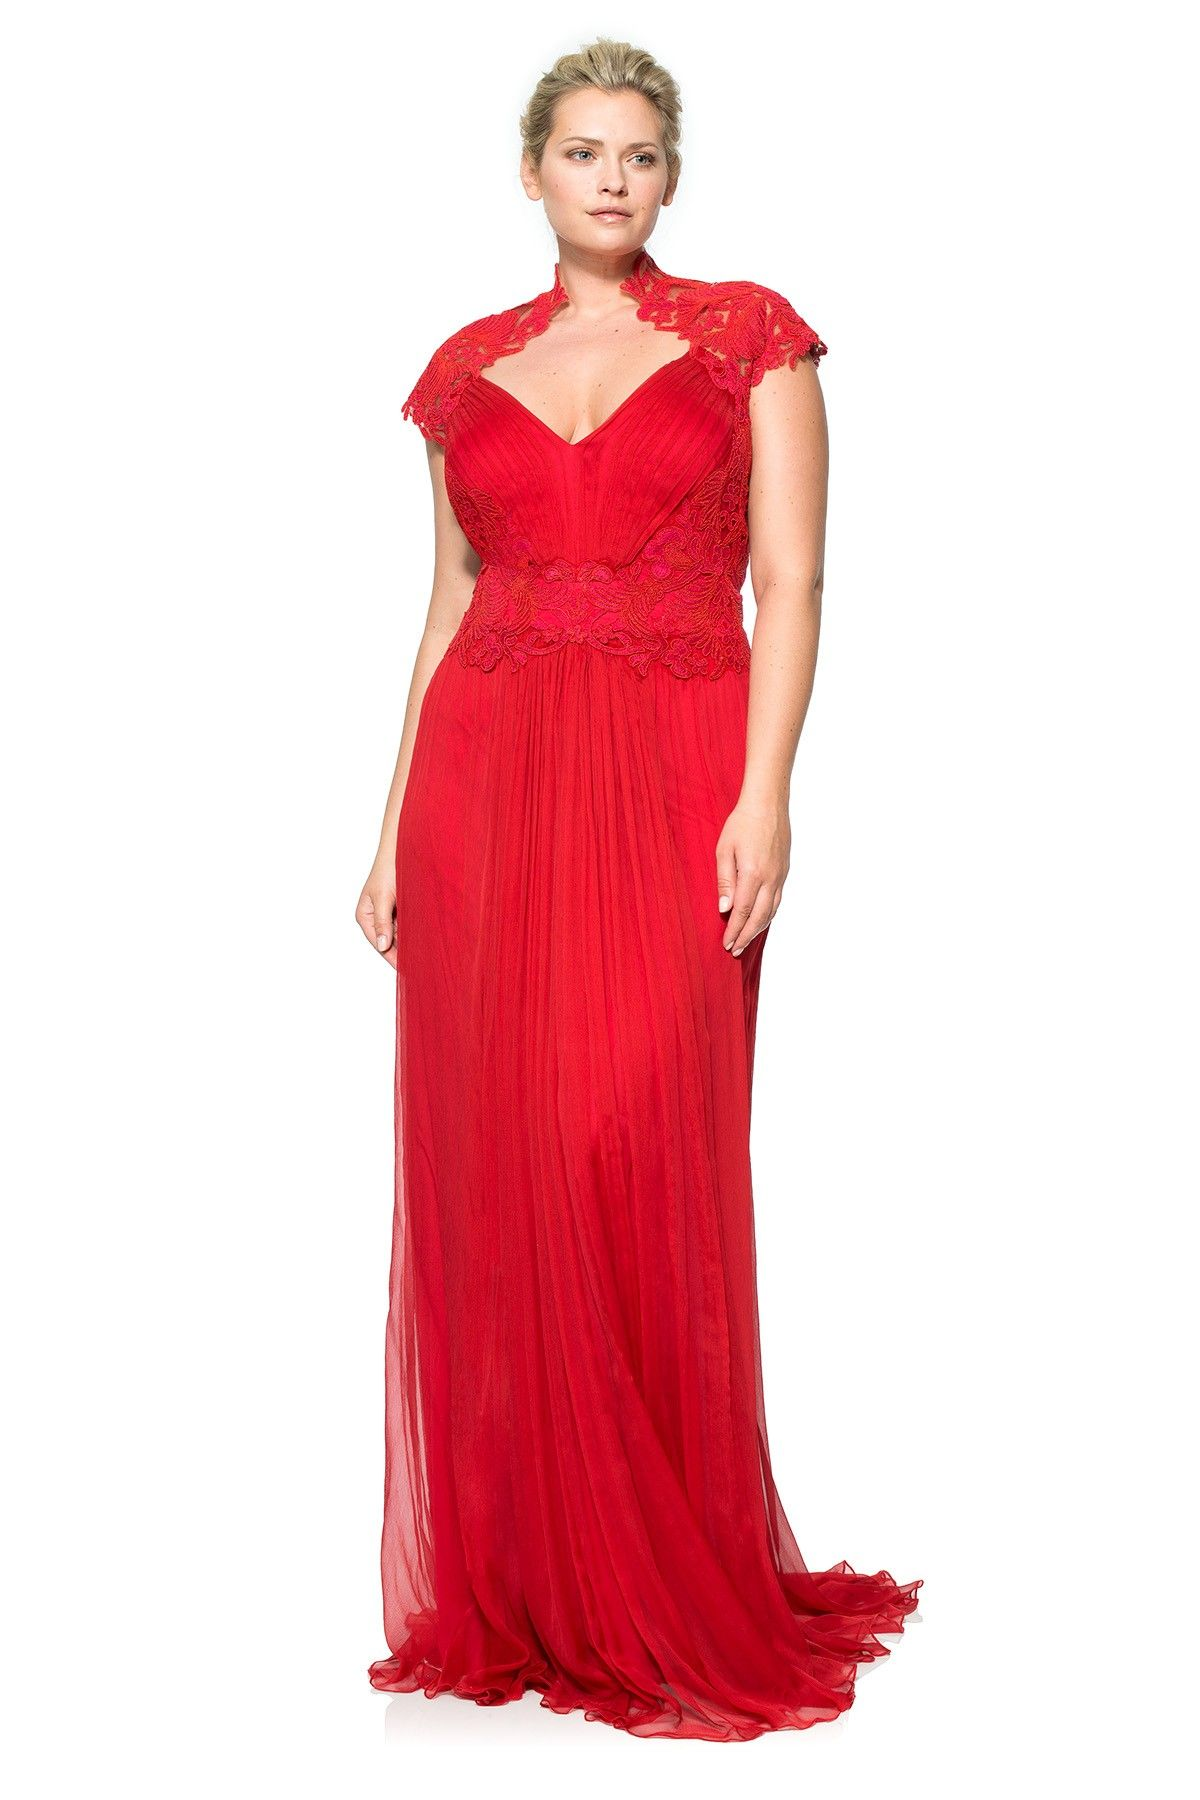 e86aabee362 Corded Embroidery on Tulle Bodice Queen Ann Cap Sleeve Gown - PLUS SIZE